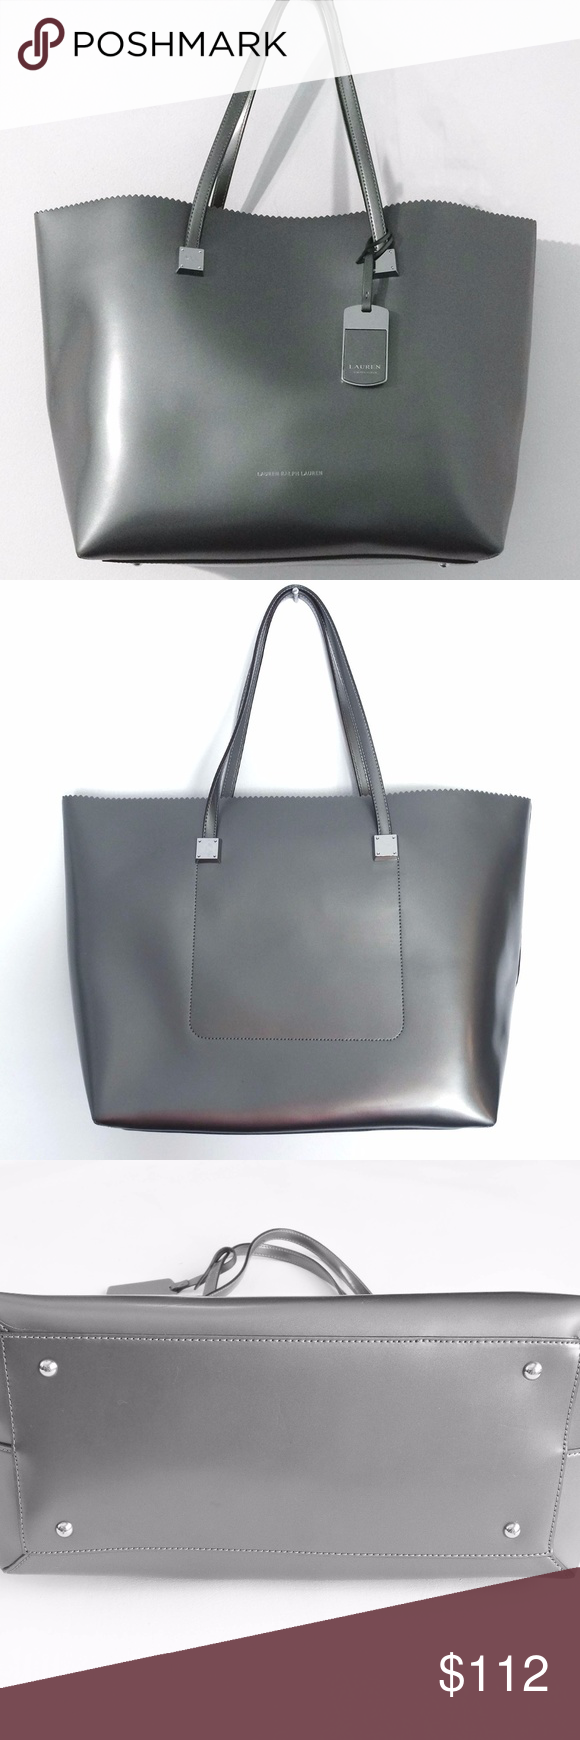 09050dd6f666 NWT Ralph Lauren Fulham Leather Tote Lauren Ralph Lauren Pewter Tote Bag.  Retail price Hanging